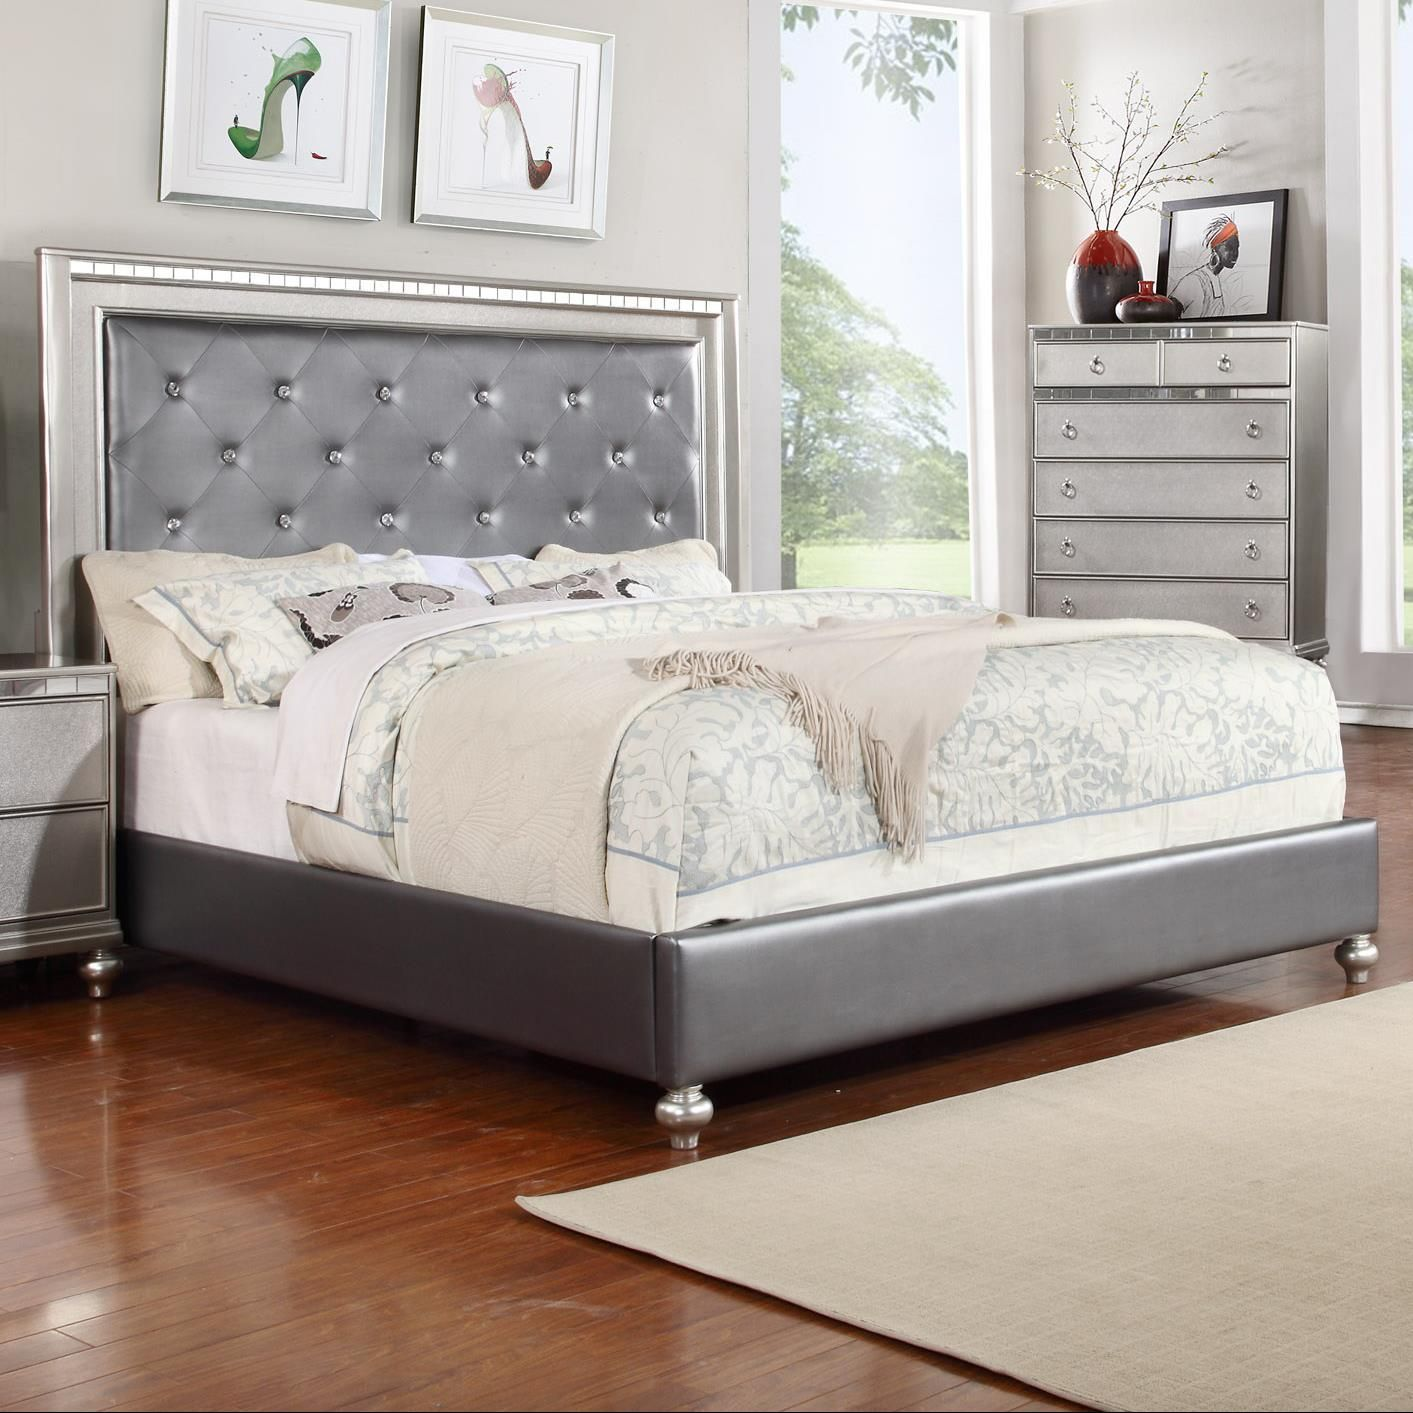 Glam Queen Upholstered Panel Bed With Rhinestone Accent Unique